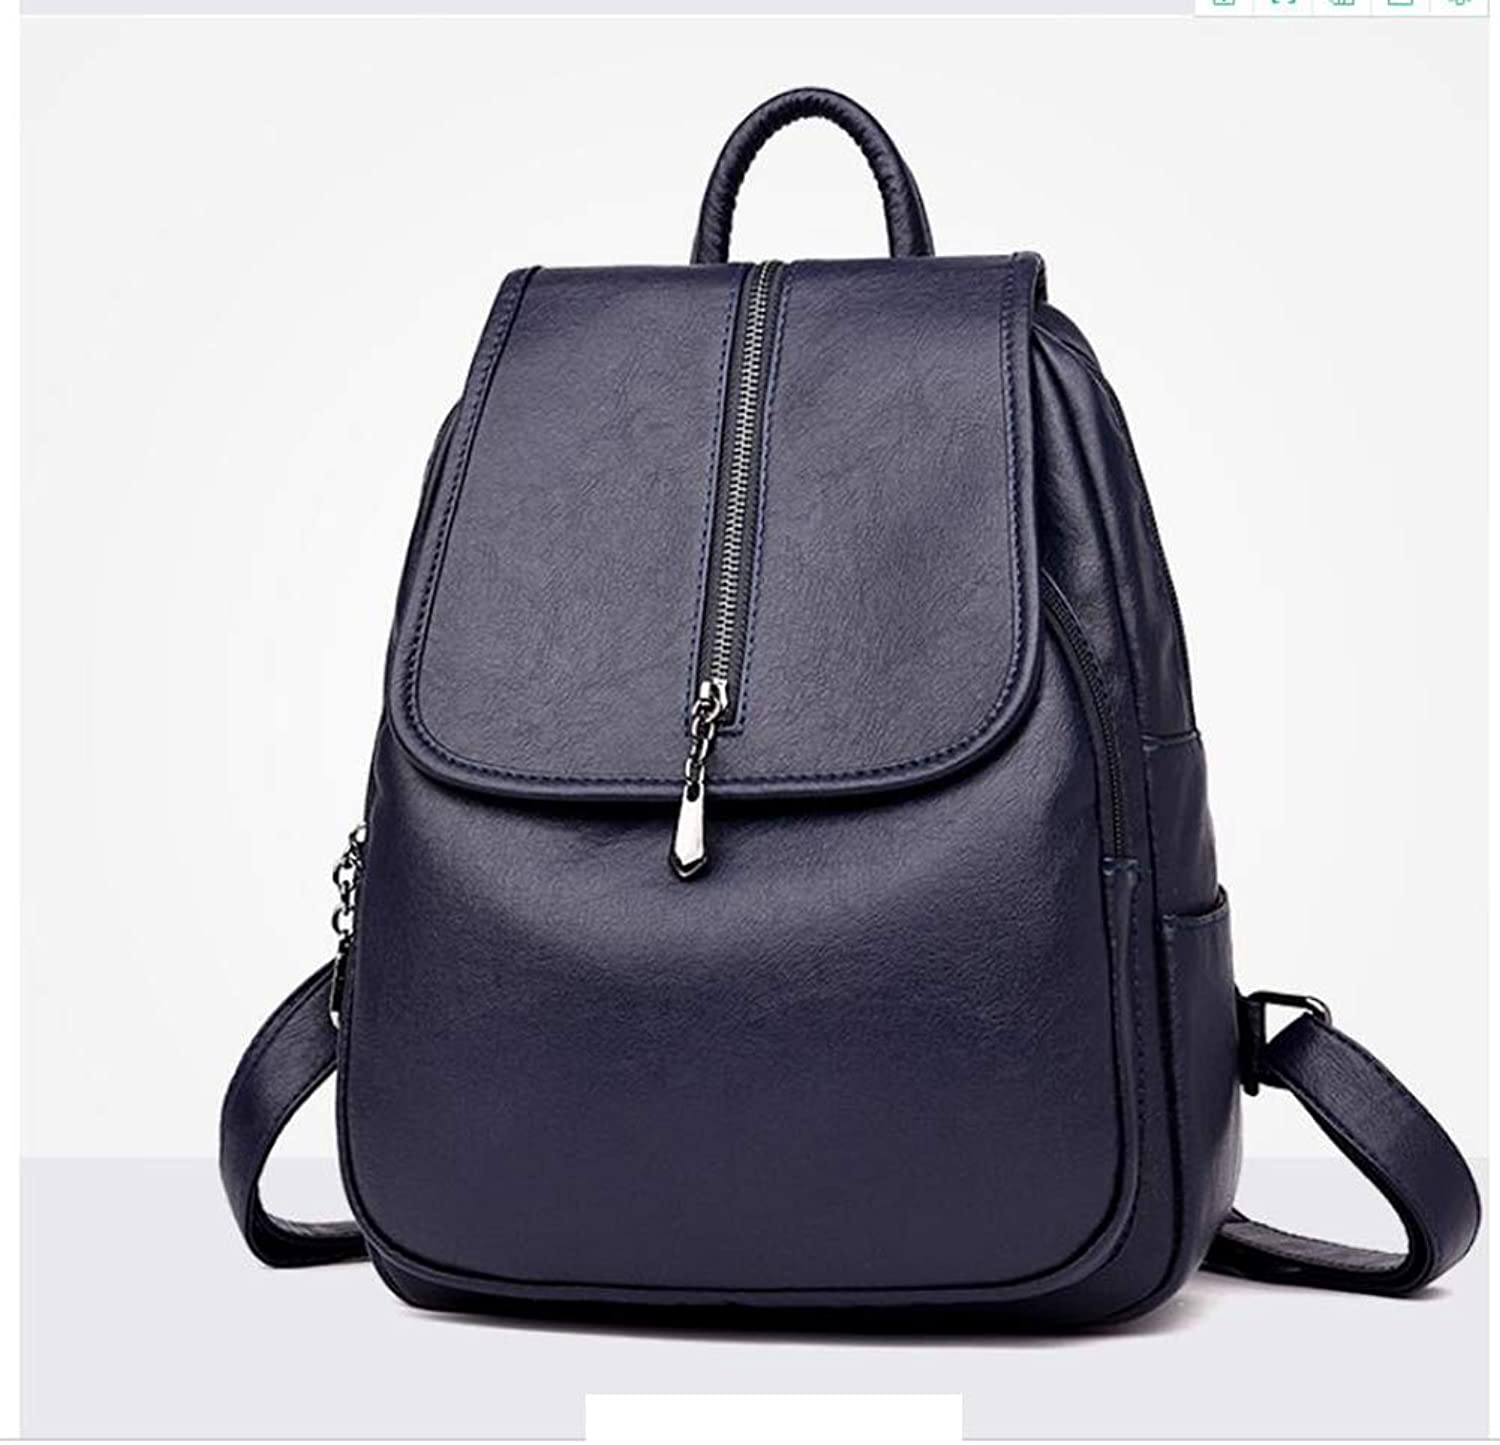 Fashion Ladies Shoulder Bag 2018 New Korean Version of The Bag Trend Travel Large Capacity Simple Soft Leather Mummy Backpack